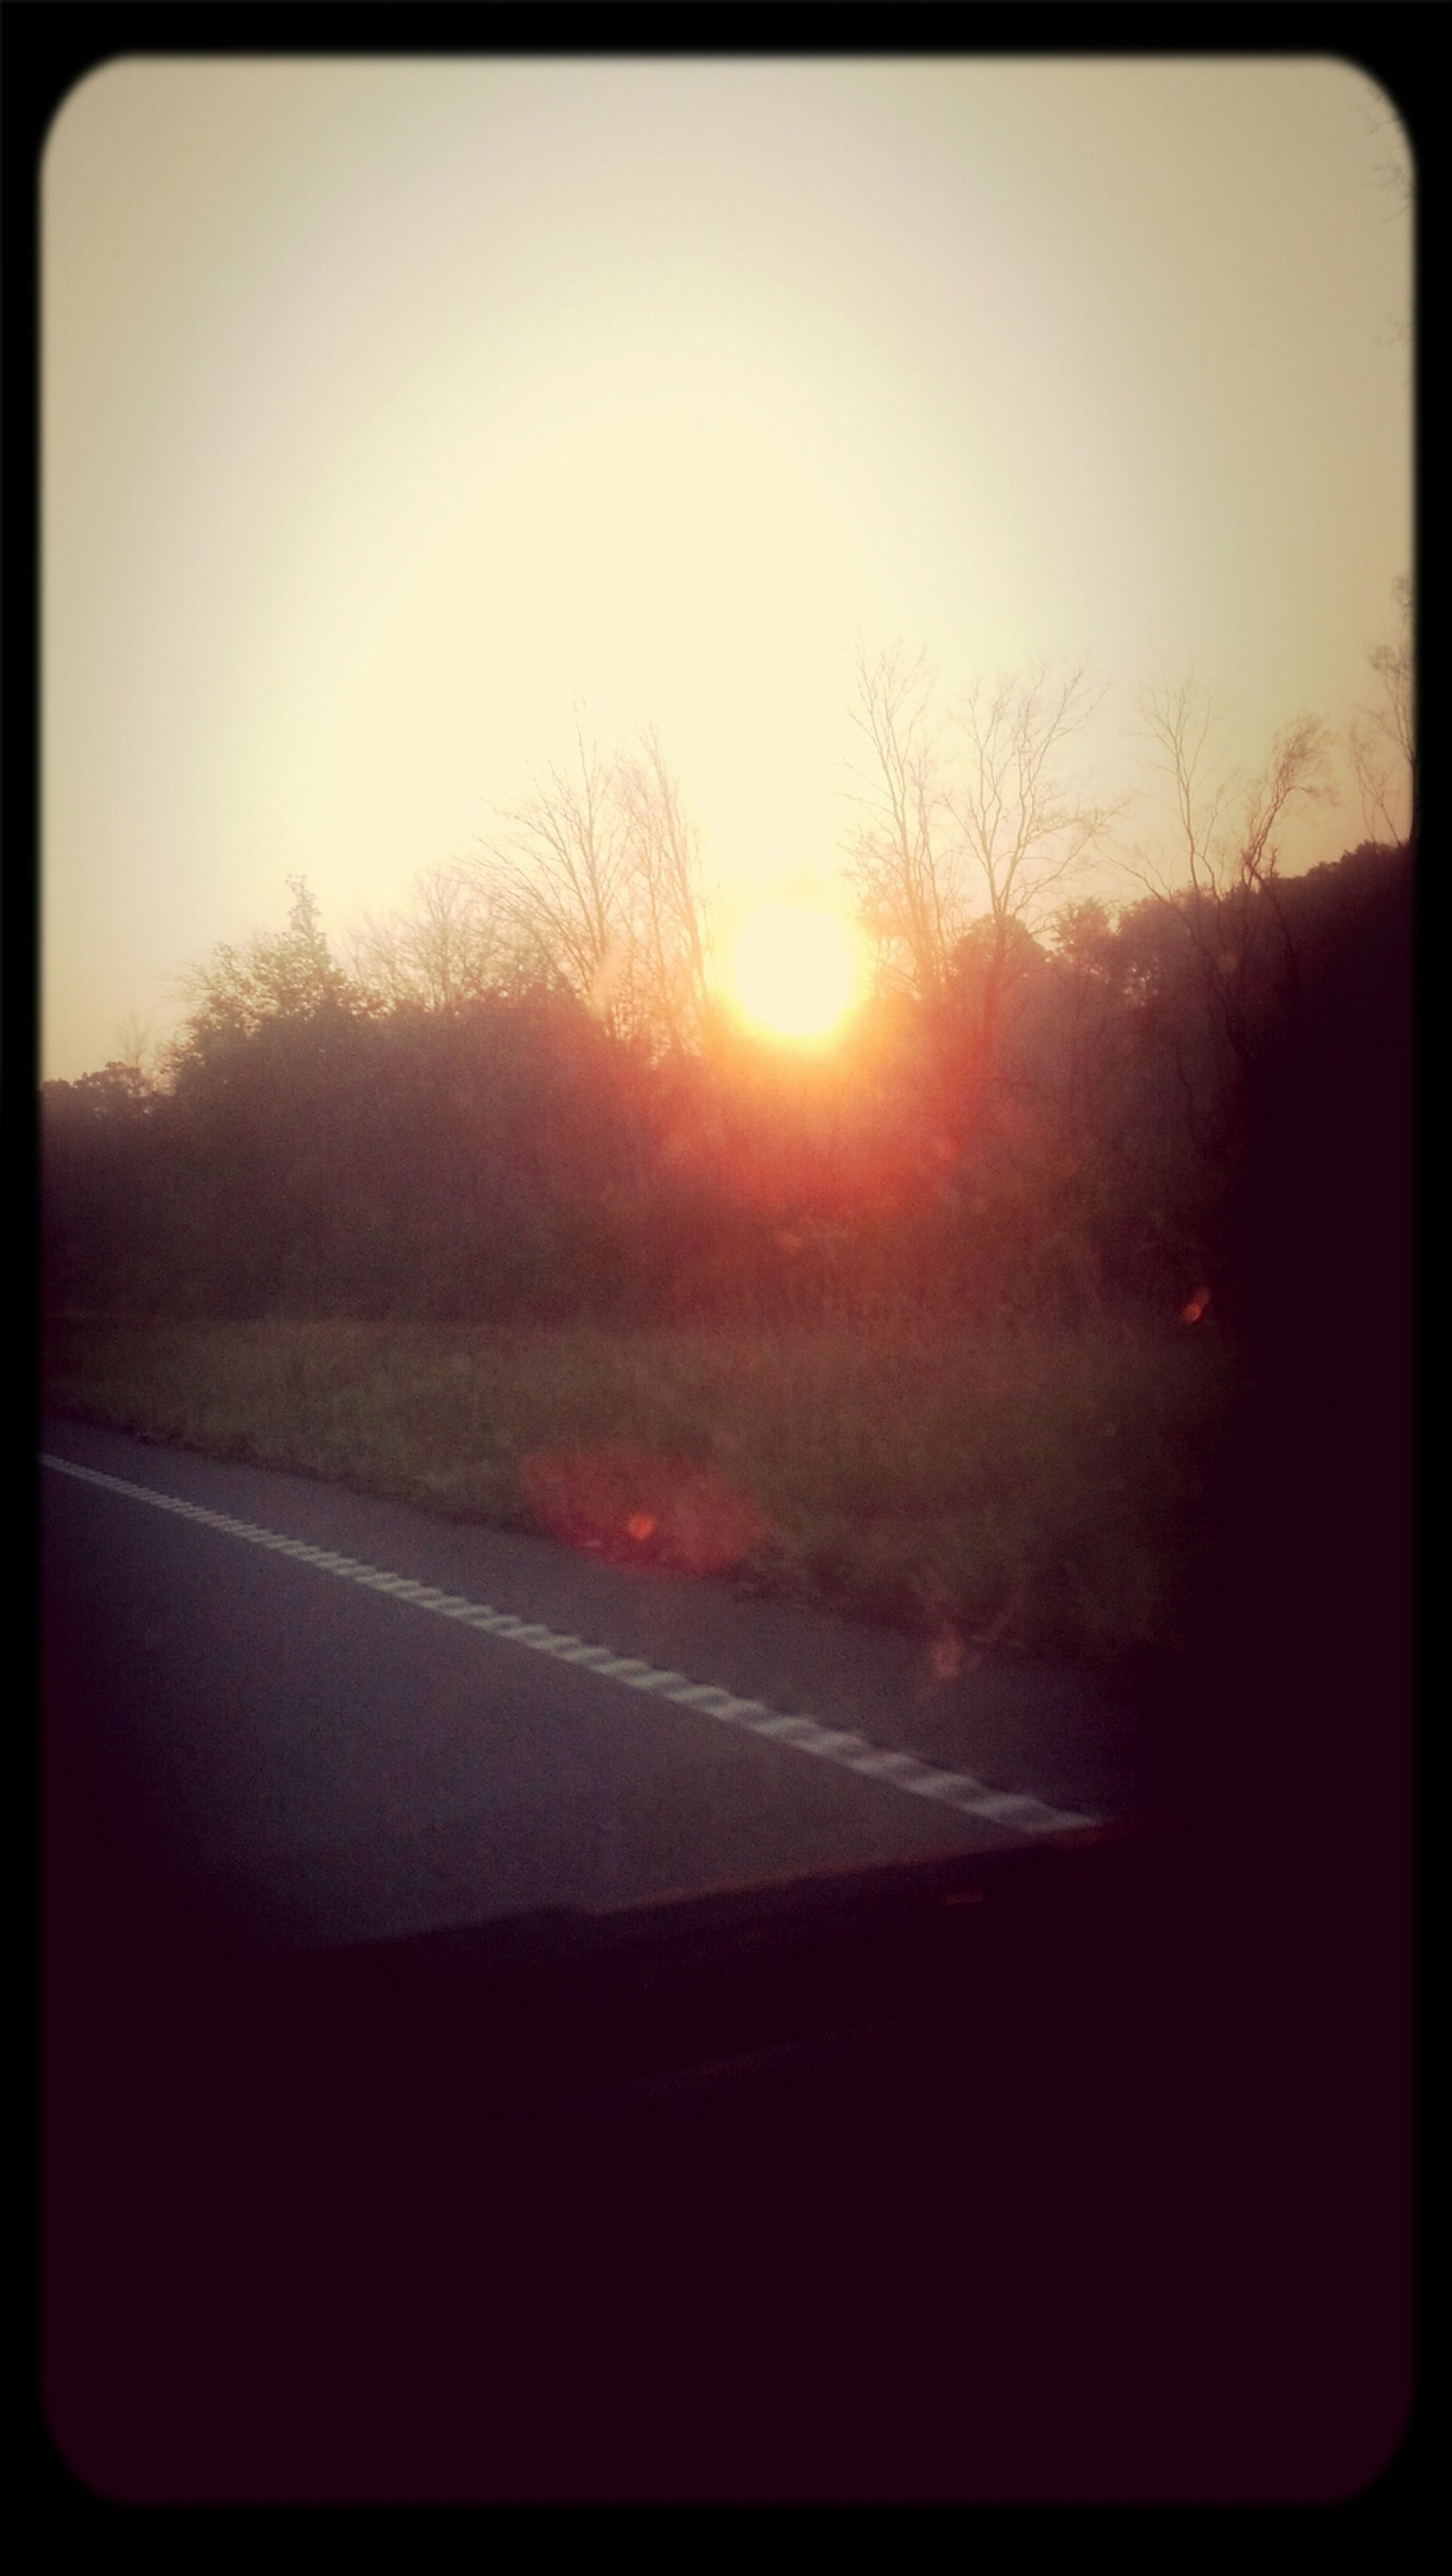 sunset, transfer print, sun, transportation, road, tree, auto post production filter, sunlight, sky, silhouette, tranquility, sunbeam, clear sky, tranquil scene, the way forward, nature, road marking, scenics, lens flare, country road